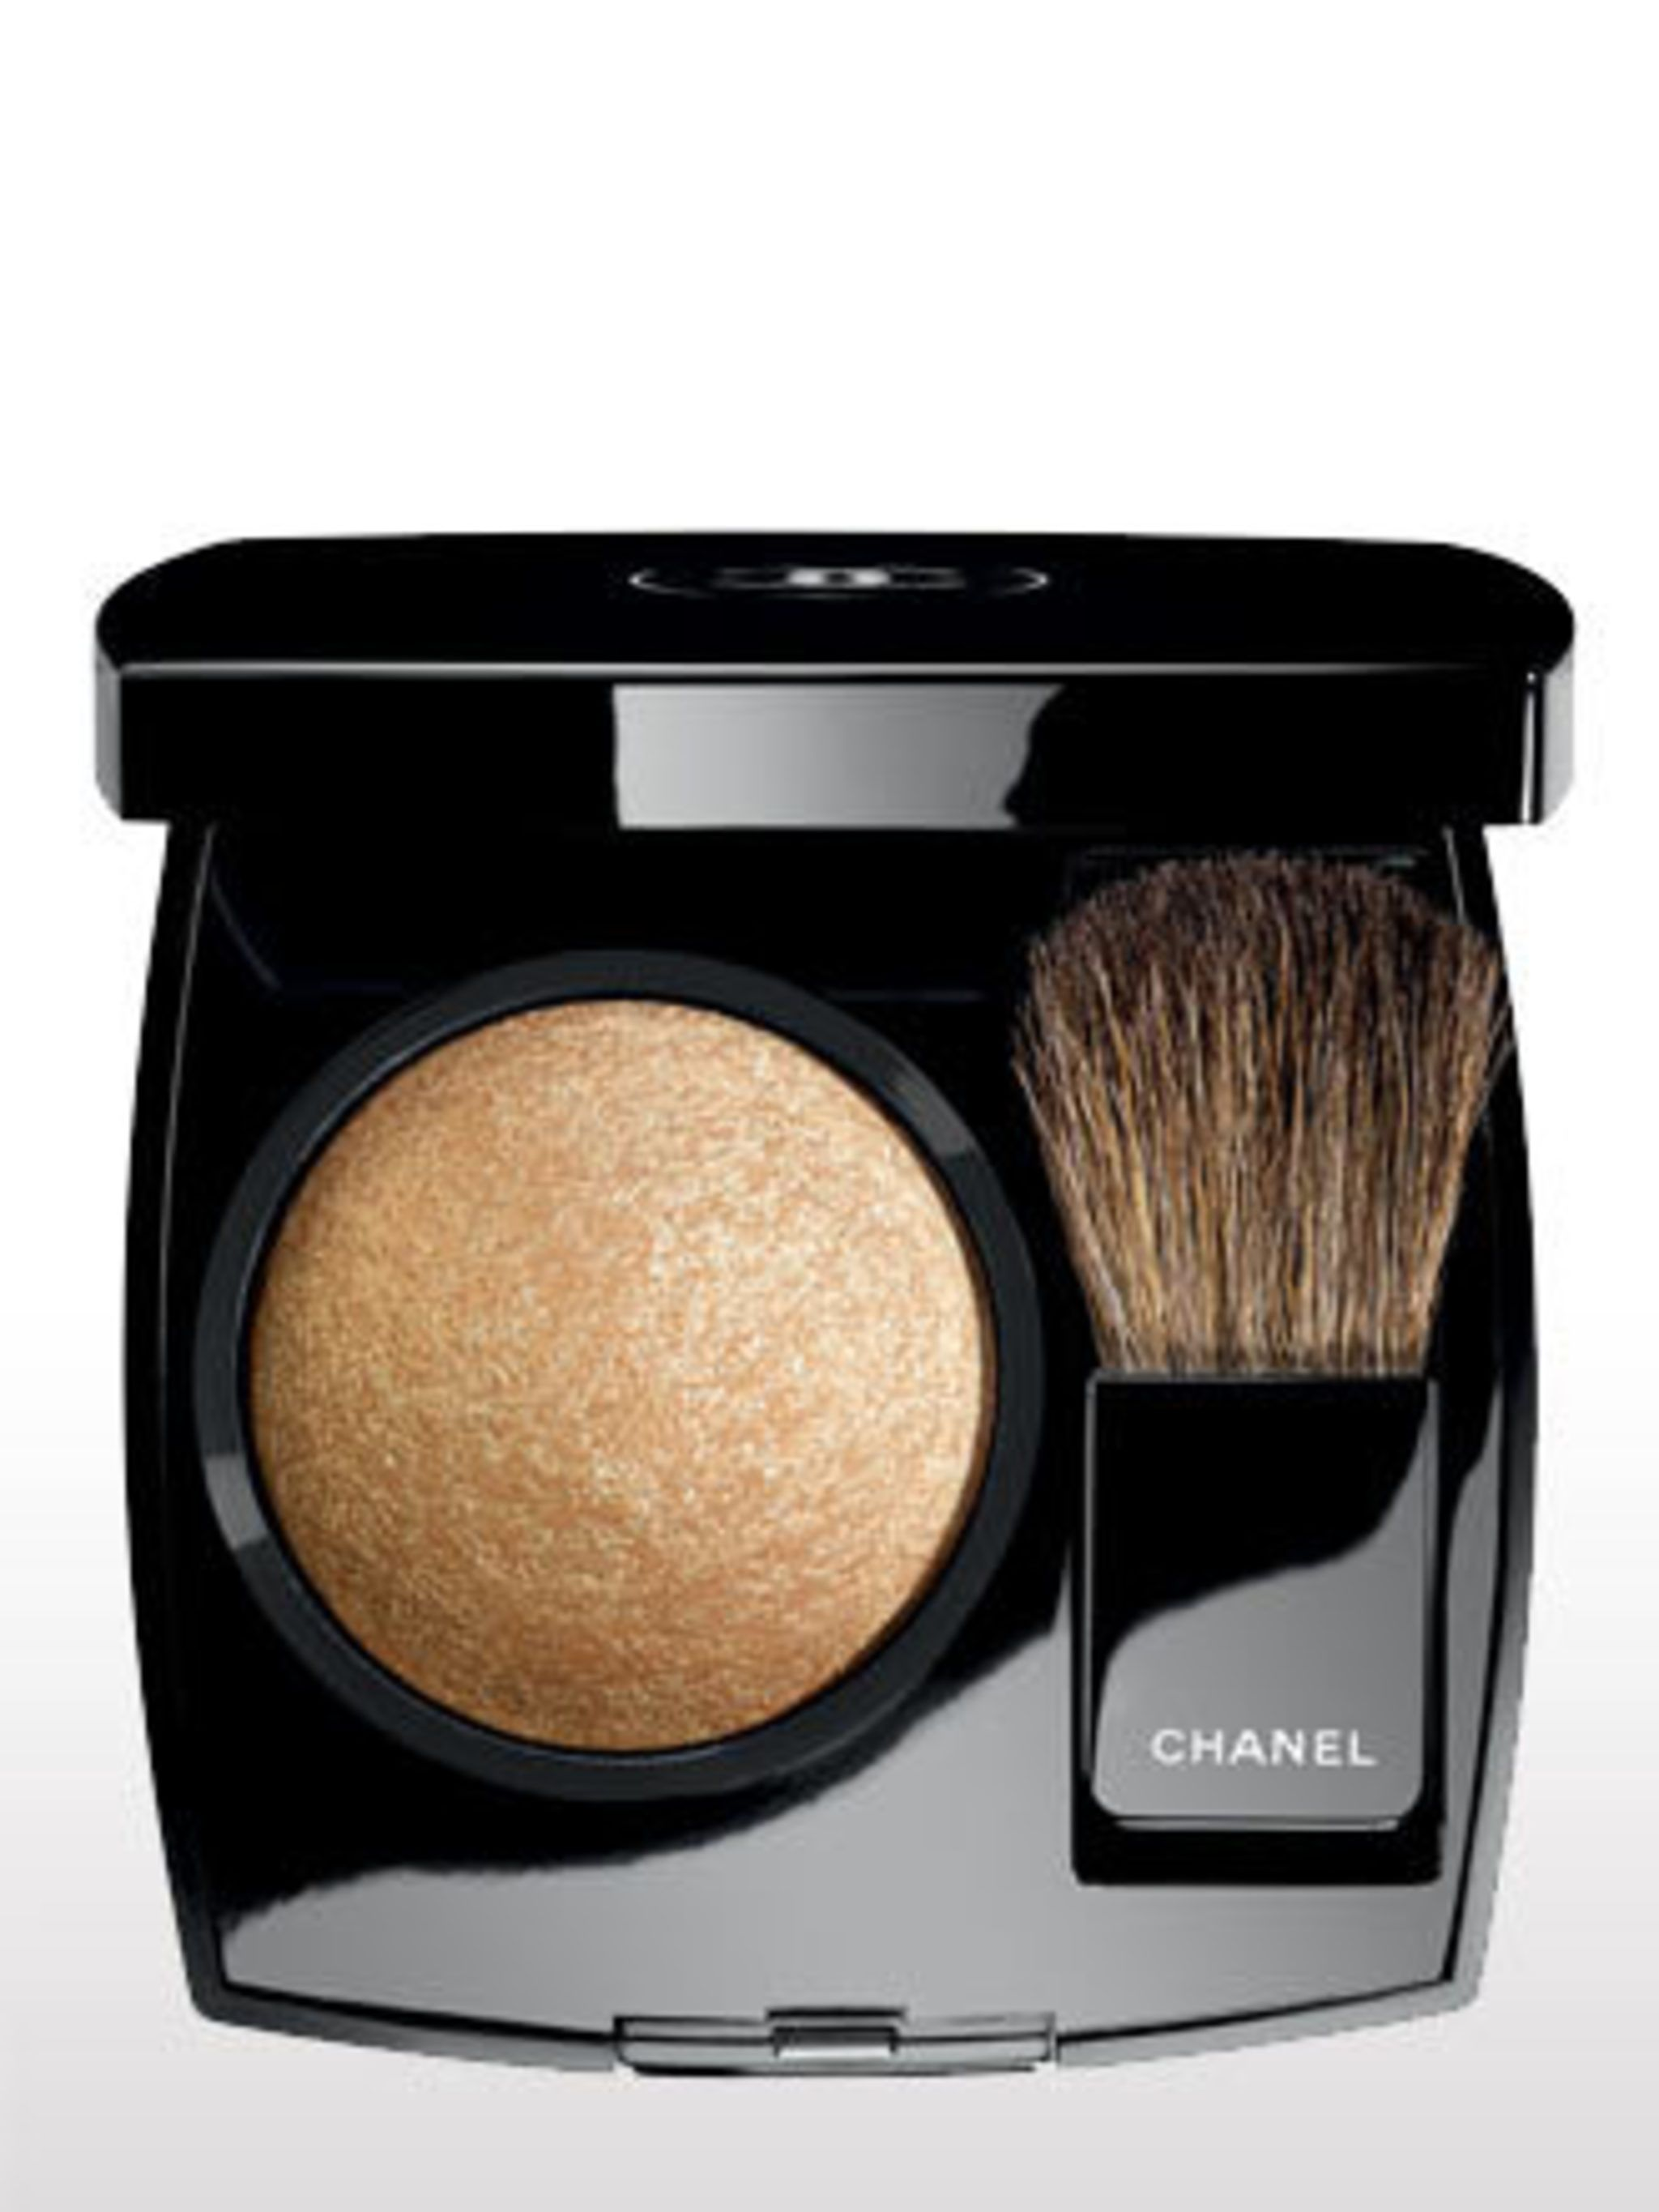 """<p>This powder highlighter adds what can only be described as a 'grown-up' golden shimmer to skin. Use on cheekbones, brow bones and décolleté.</p><p>Chanel Joues Contraste Powder Blush in Or, £31available from 24 June at <a href=""""http://www.selfridges.co"""